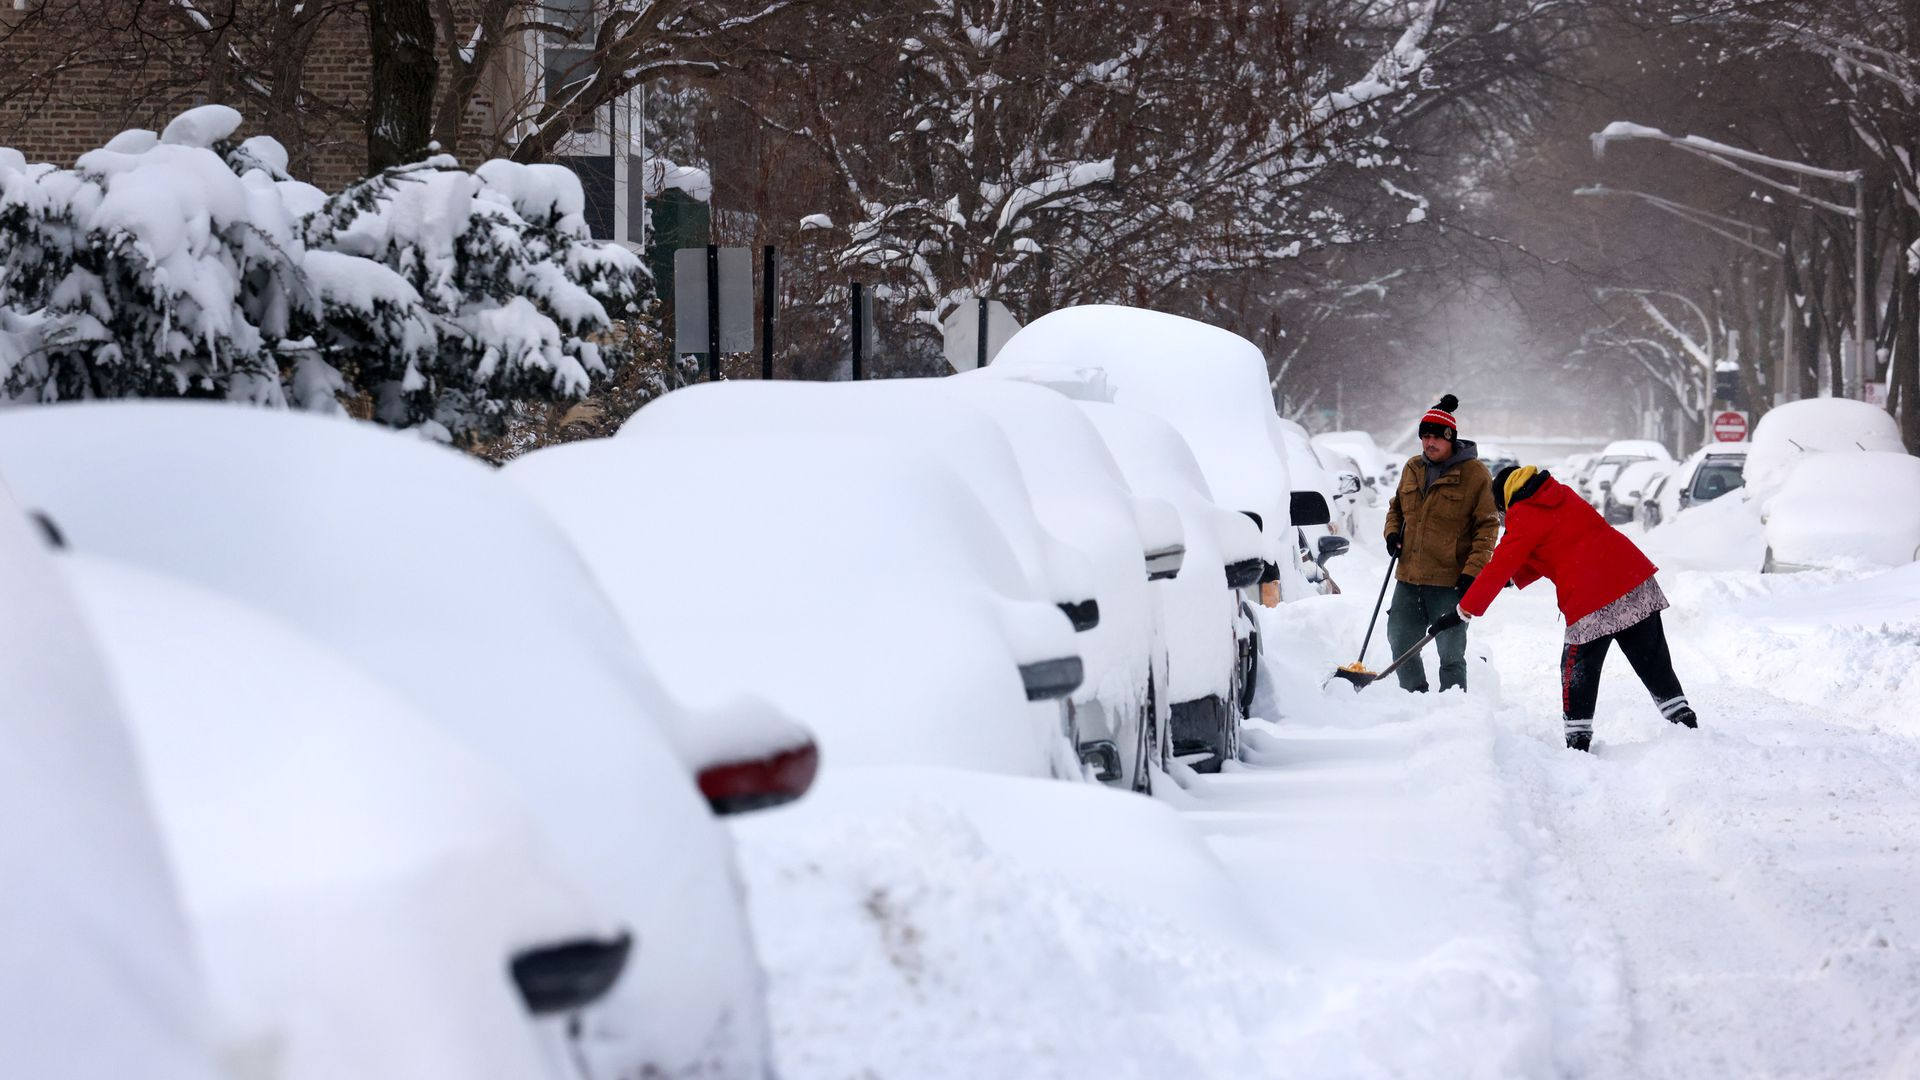 Photo of two people shoveling snow next to a line of cars